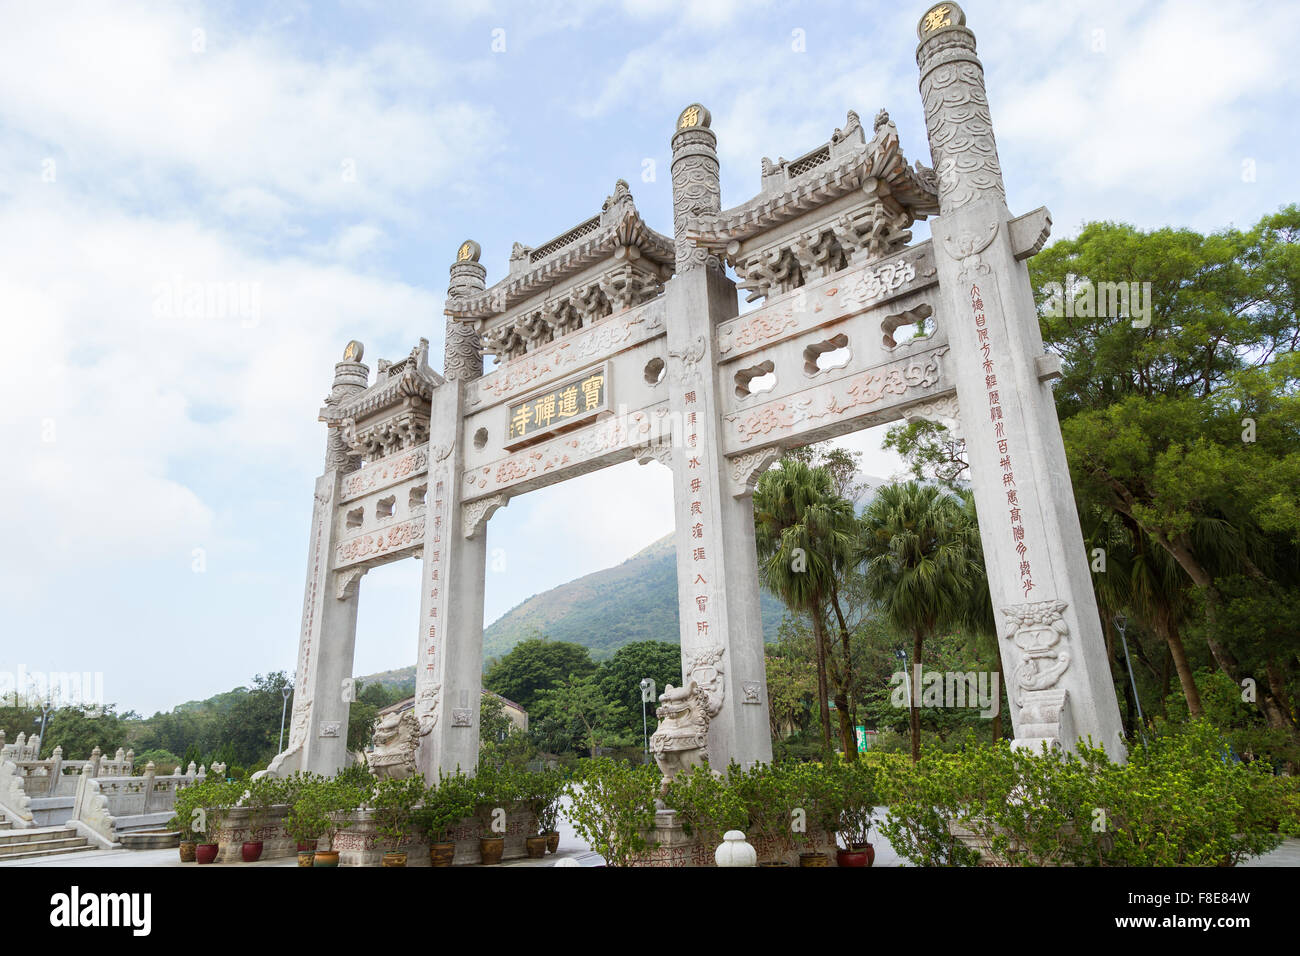 Side view of the Mountain Gate at the Po Lin Monastery on Lantau Island in Hong Kong, China. - Stock Image